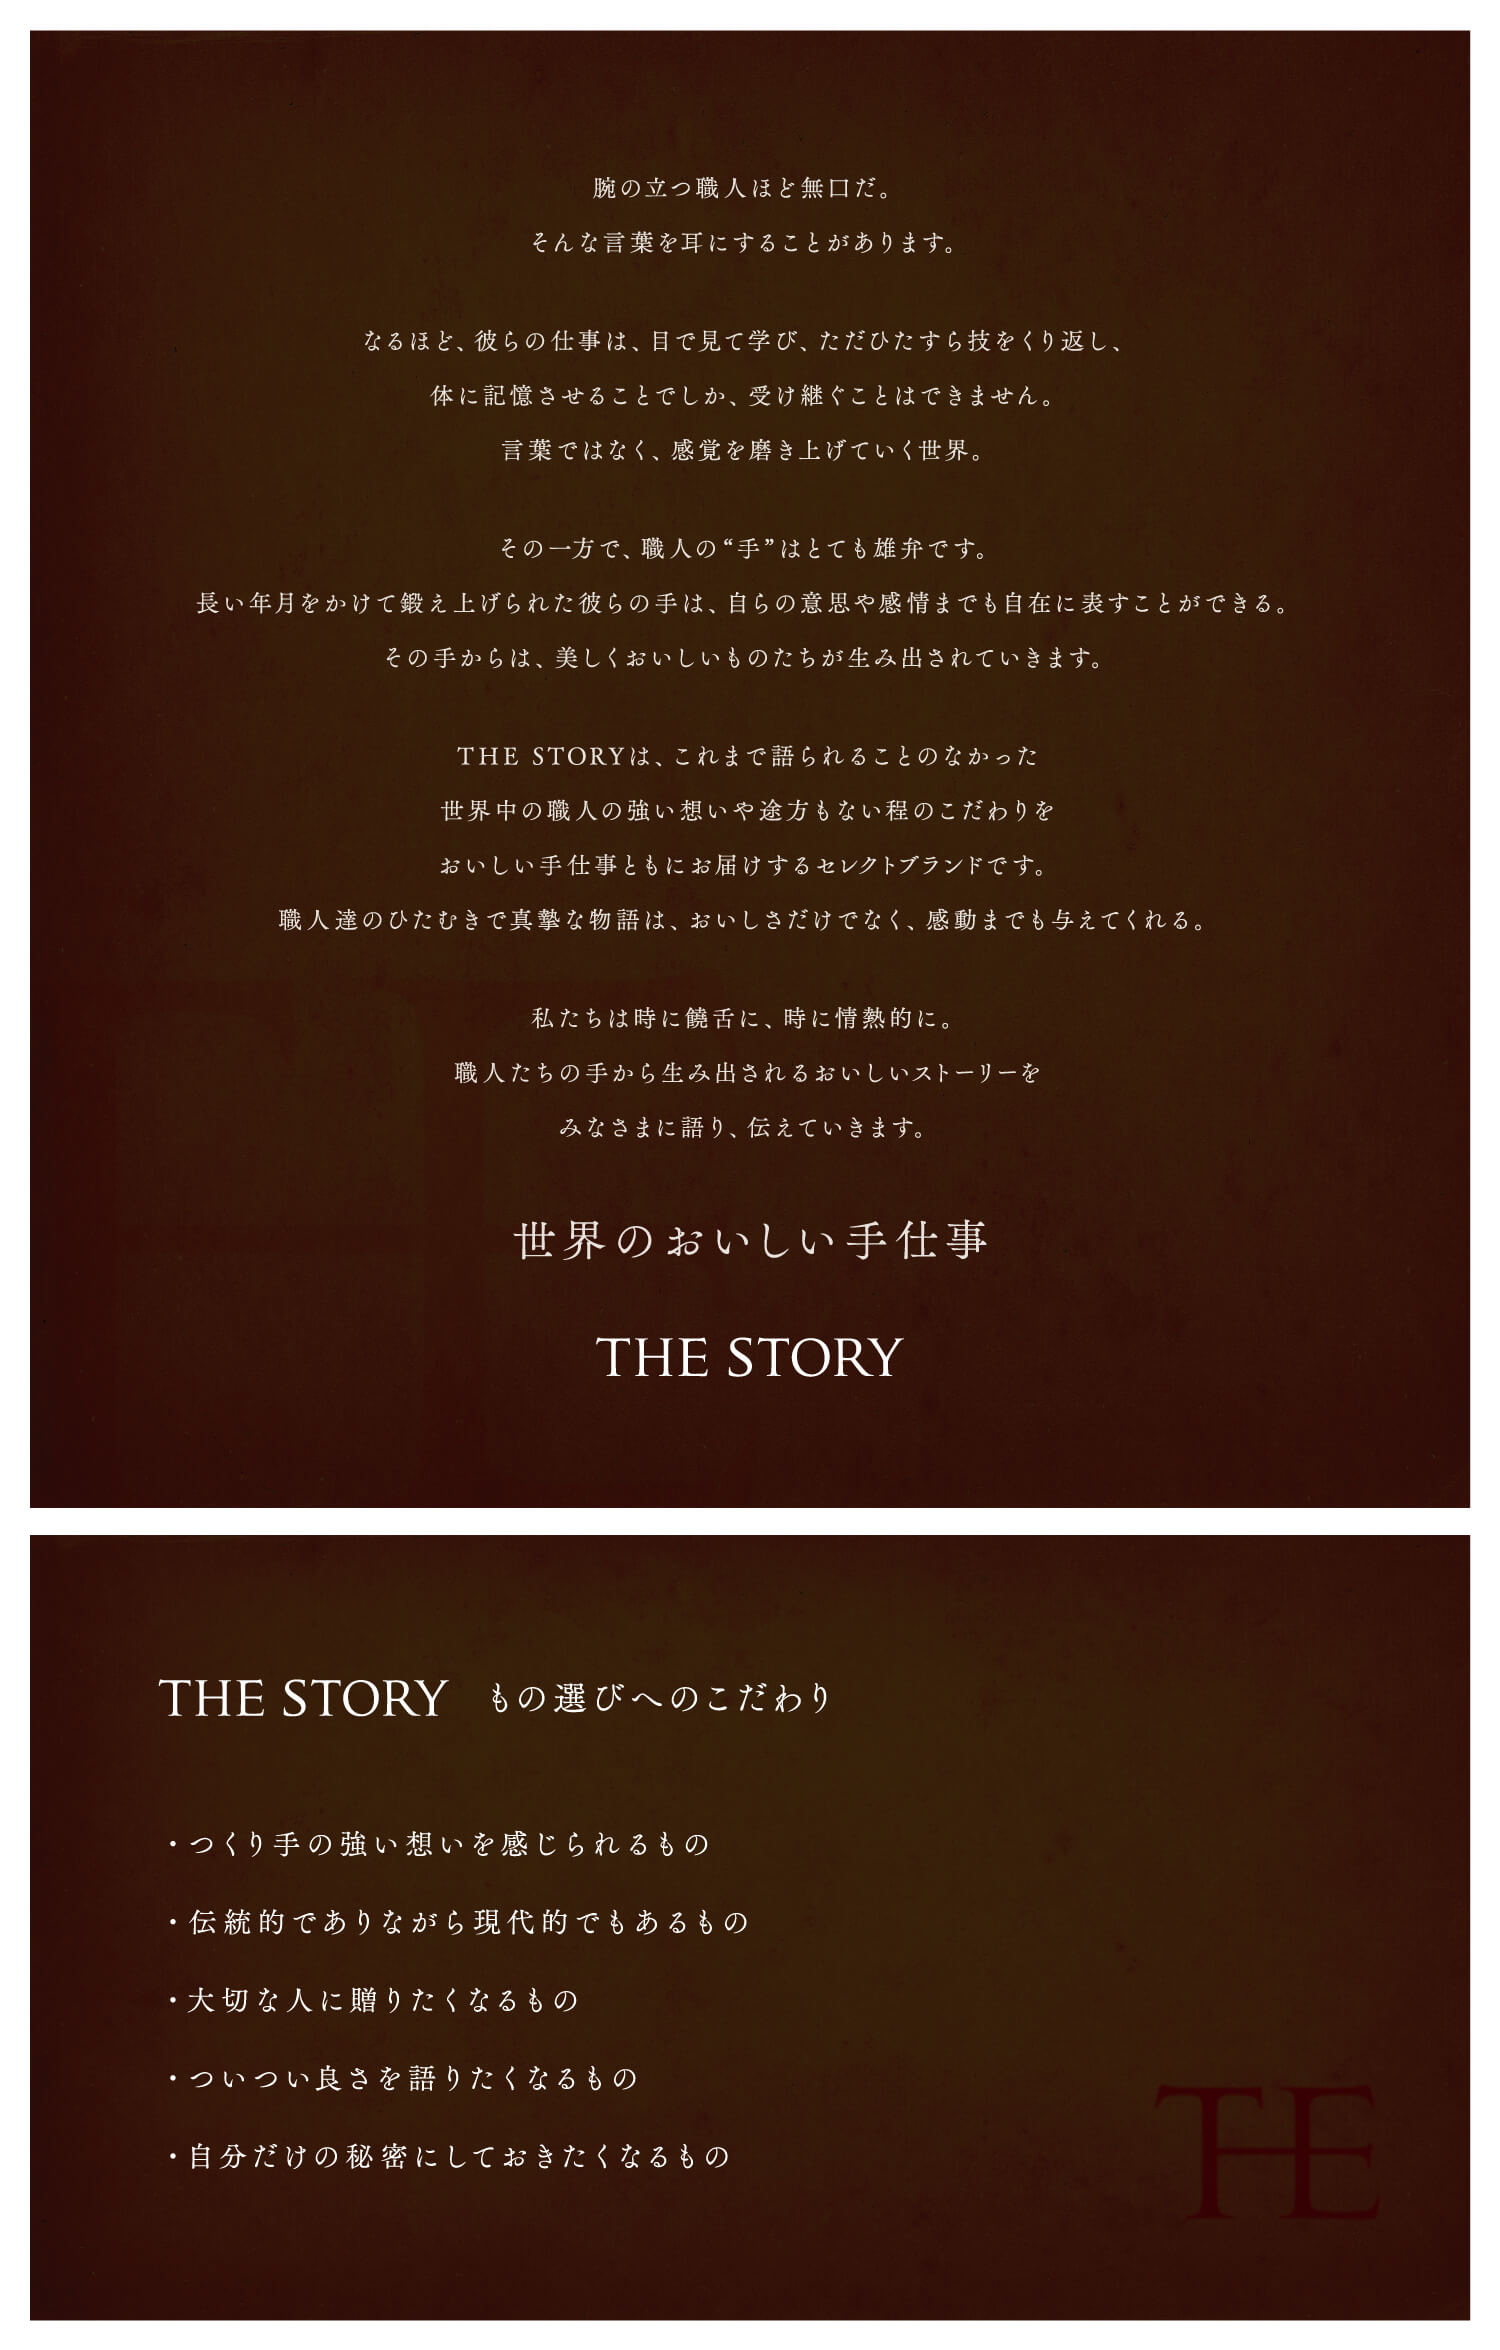 THE STORYとは